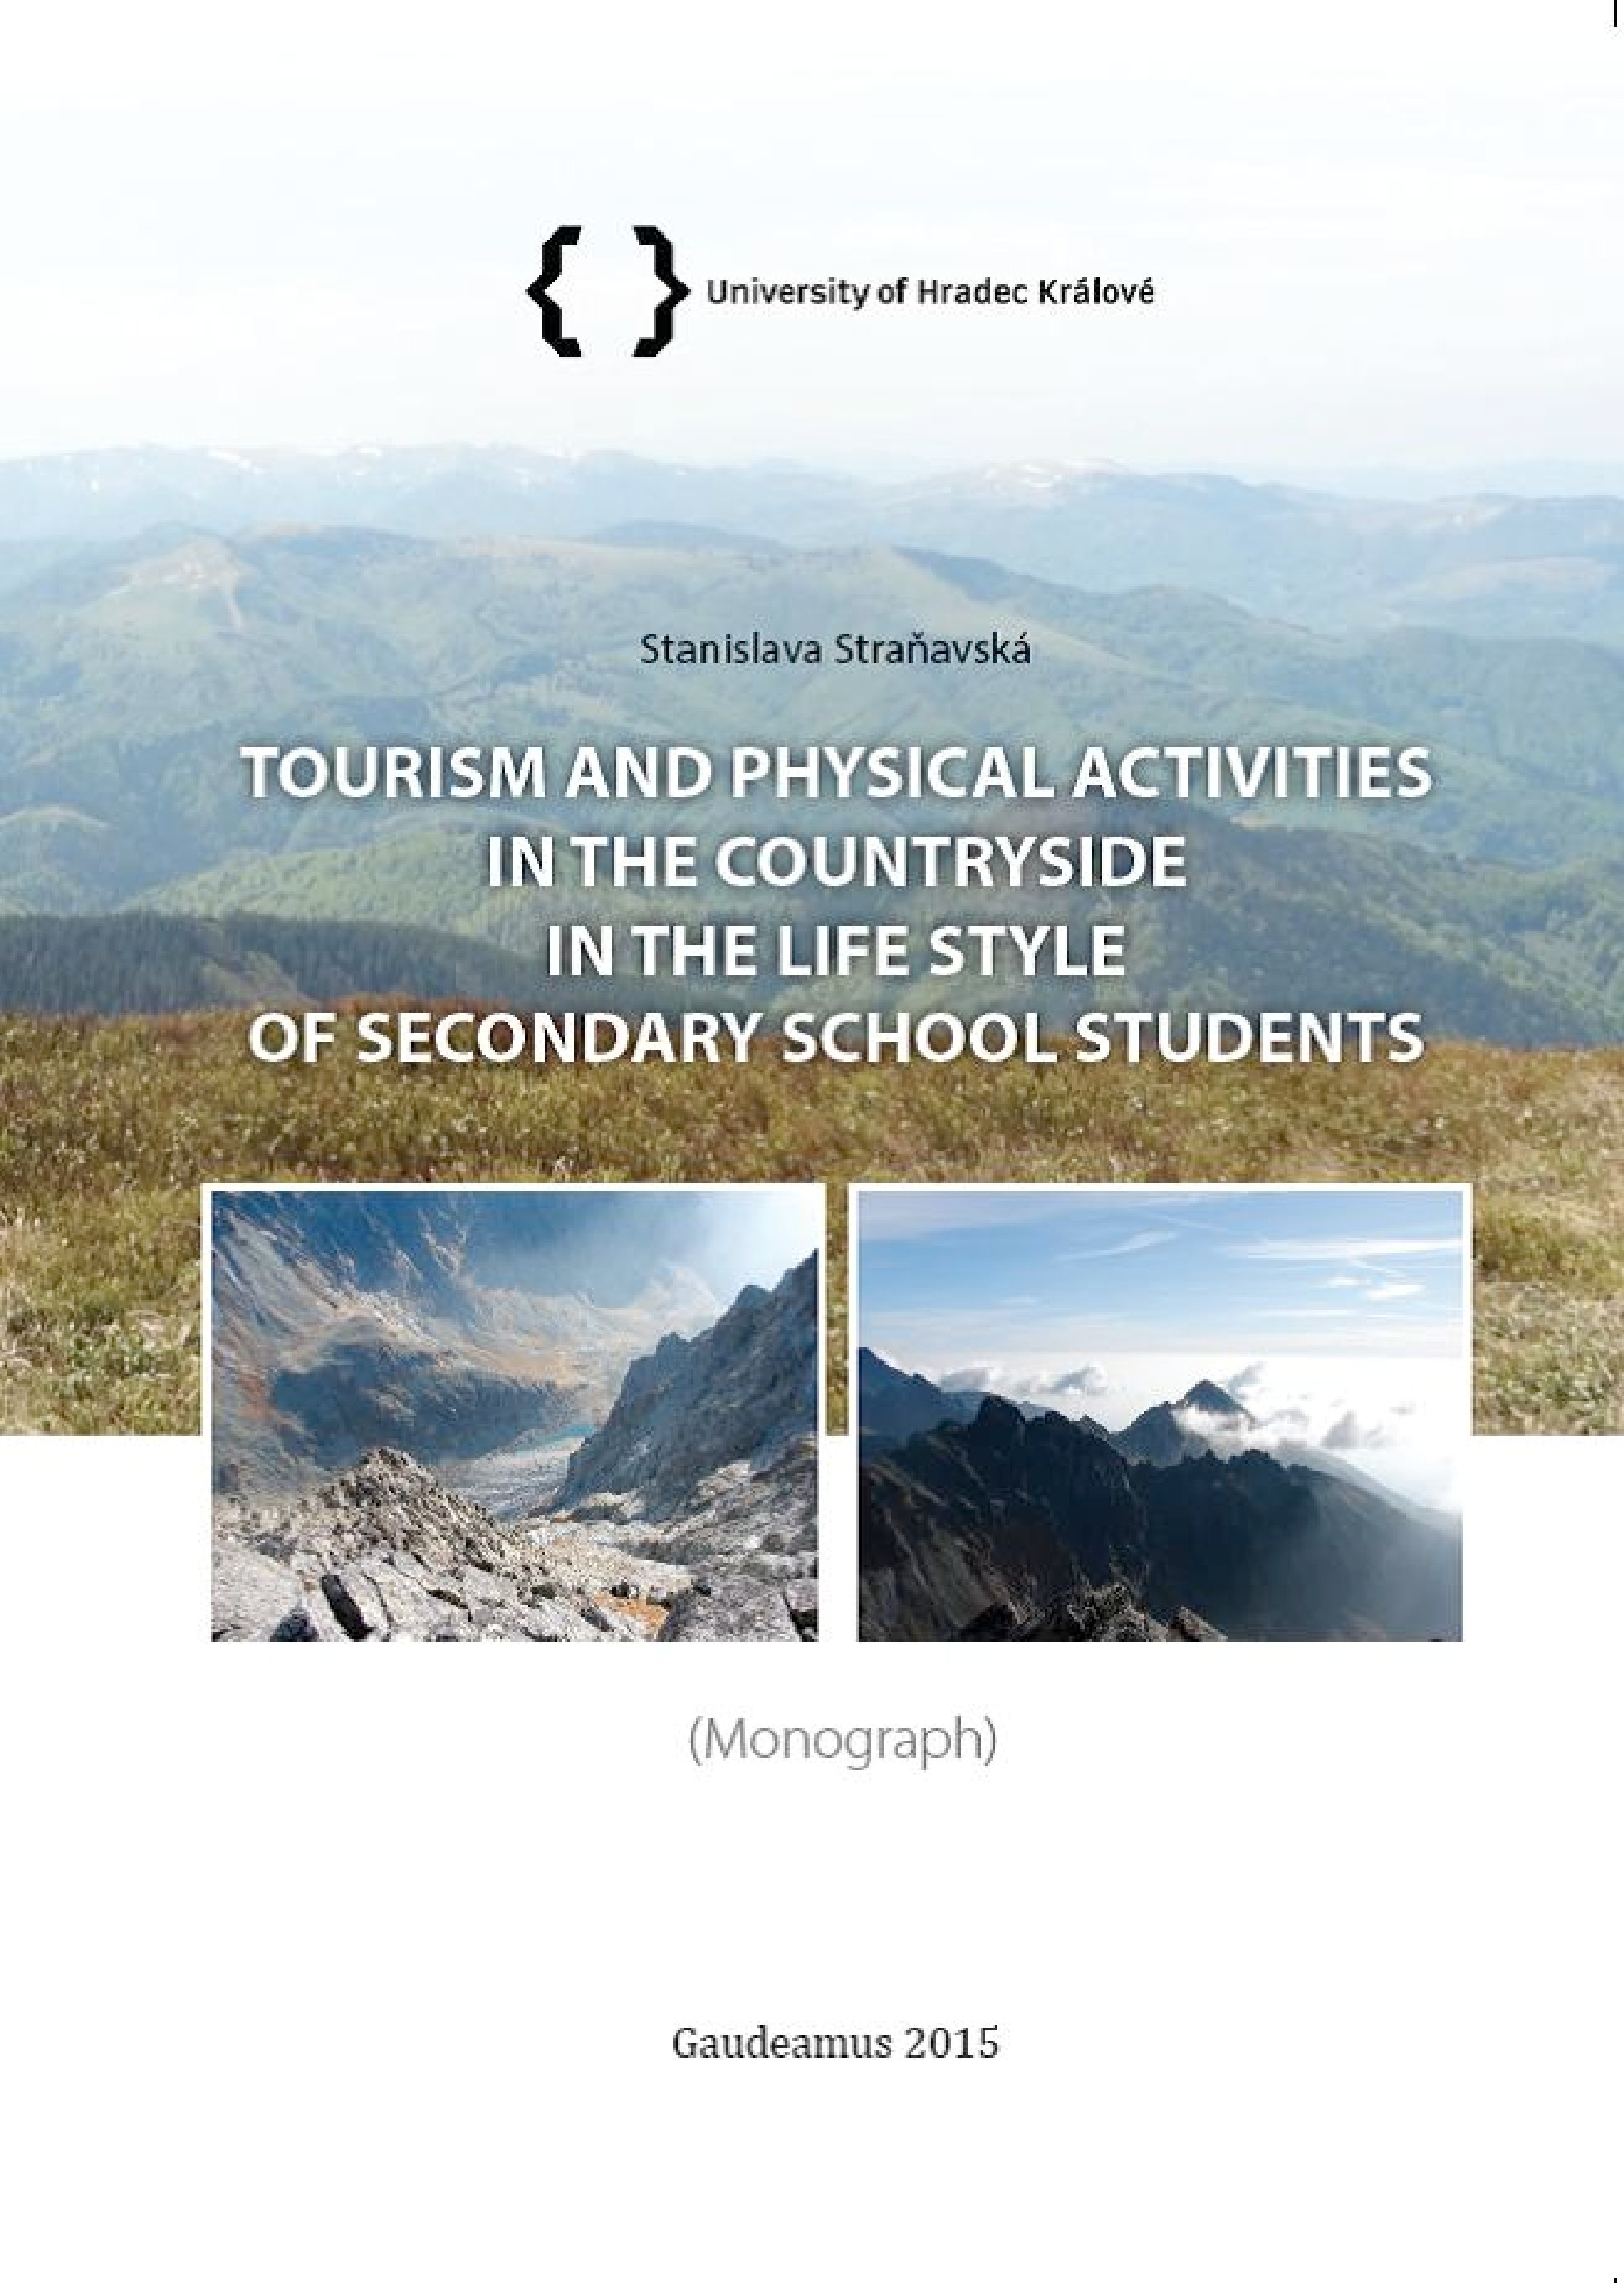 Tourism and physical activities in the countryside in the life style of secondary school students